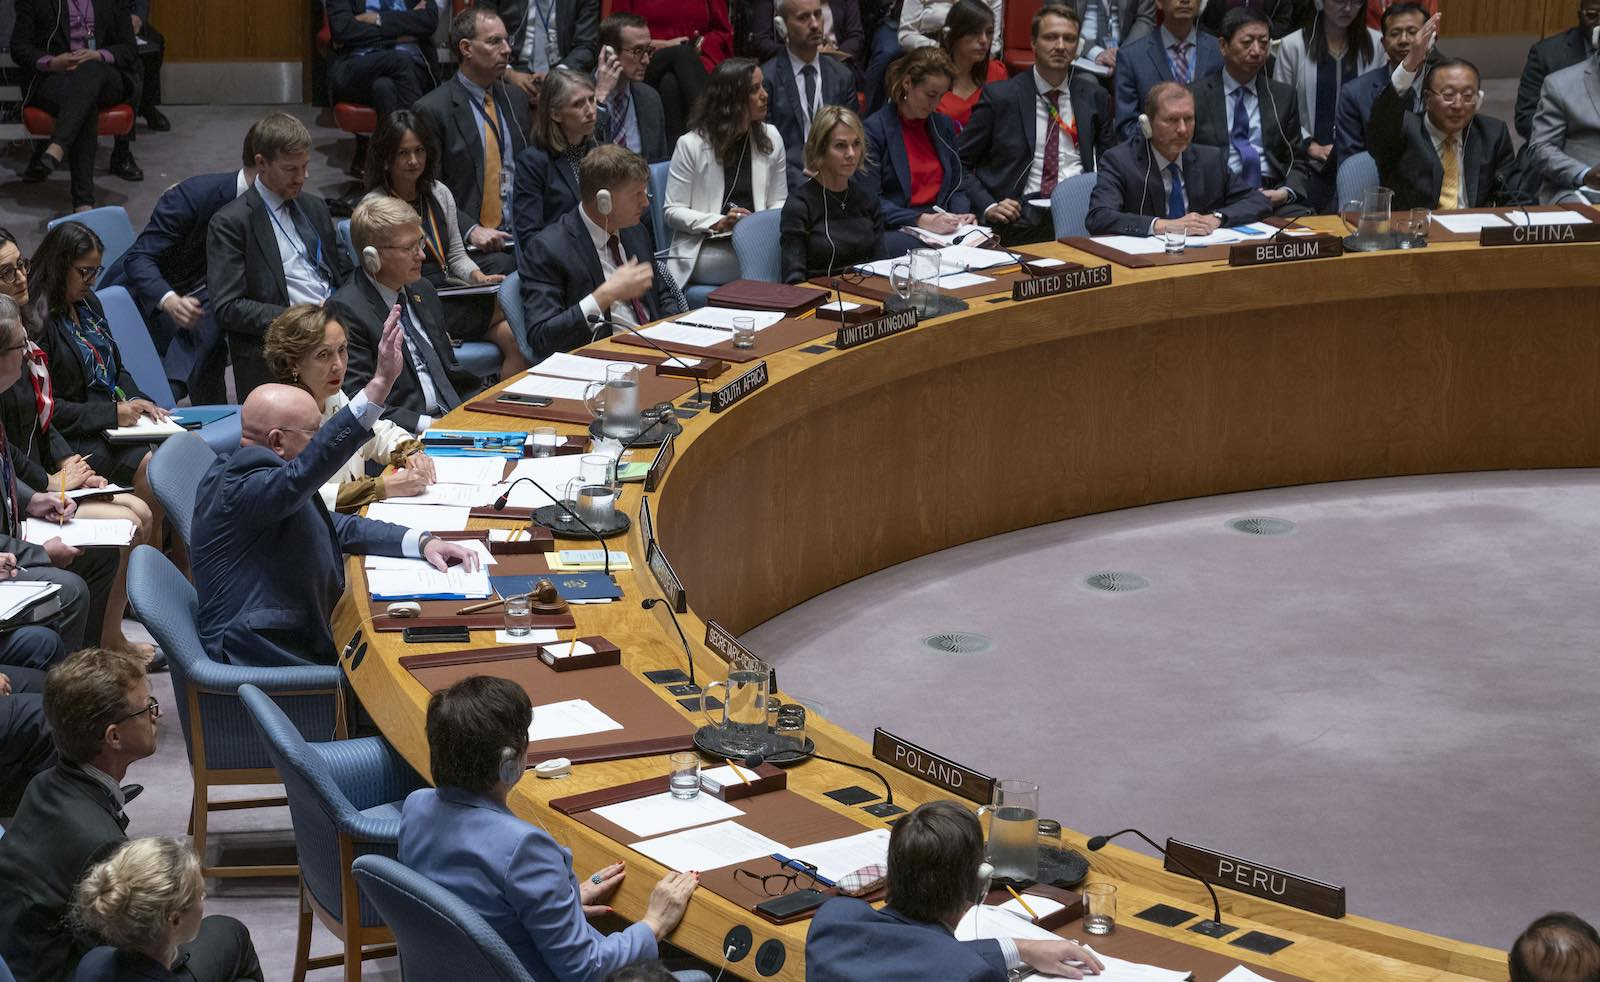 Representatives of Russia and China raise their hands to veto a UN Security Council resolution on Syria (Photo: Cia Pak/United Nations)